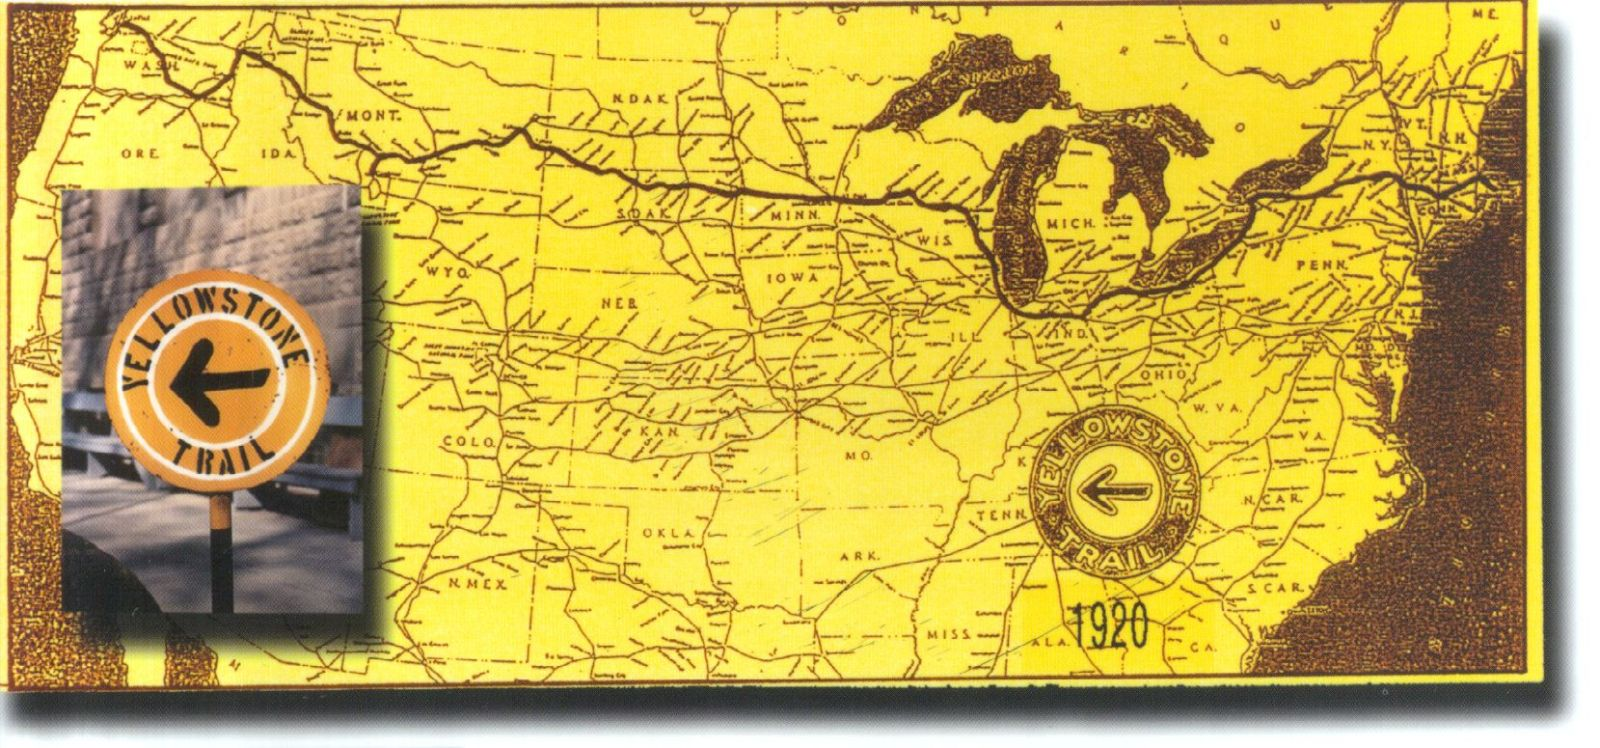 Yellowstone Trail Map Members Gallery AMERICAN ROAD FORUMthe